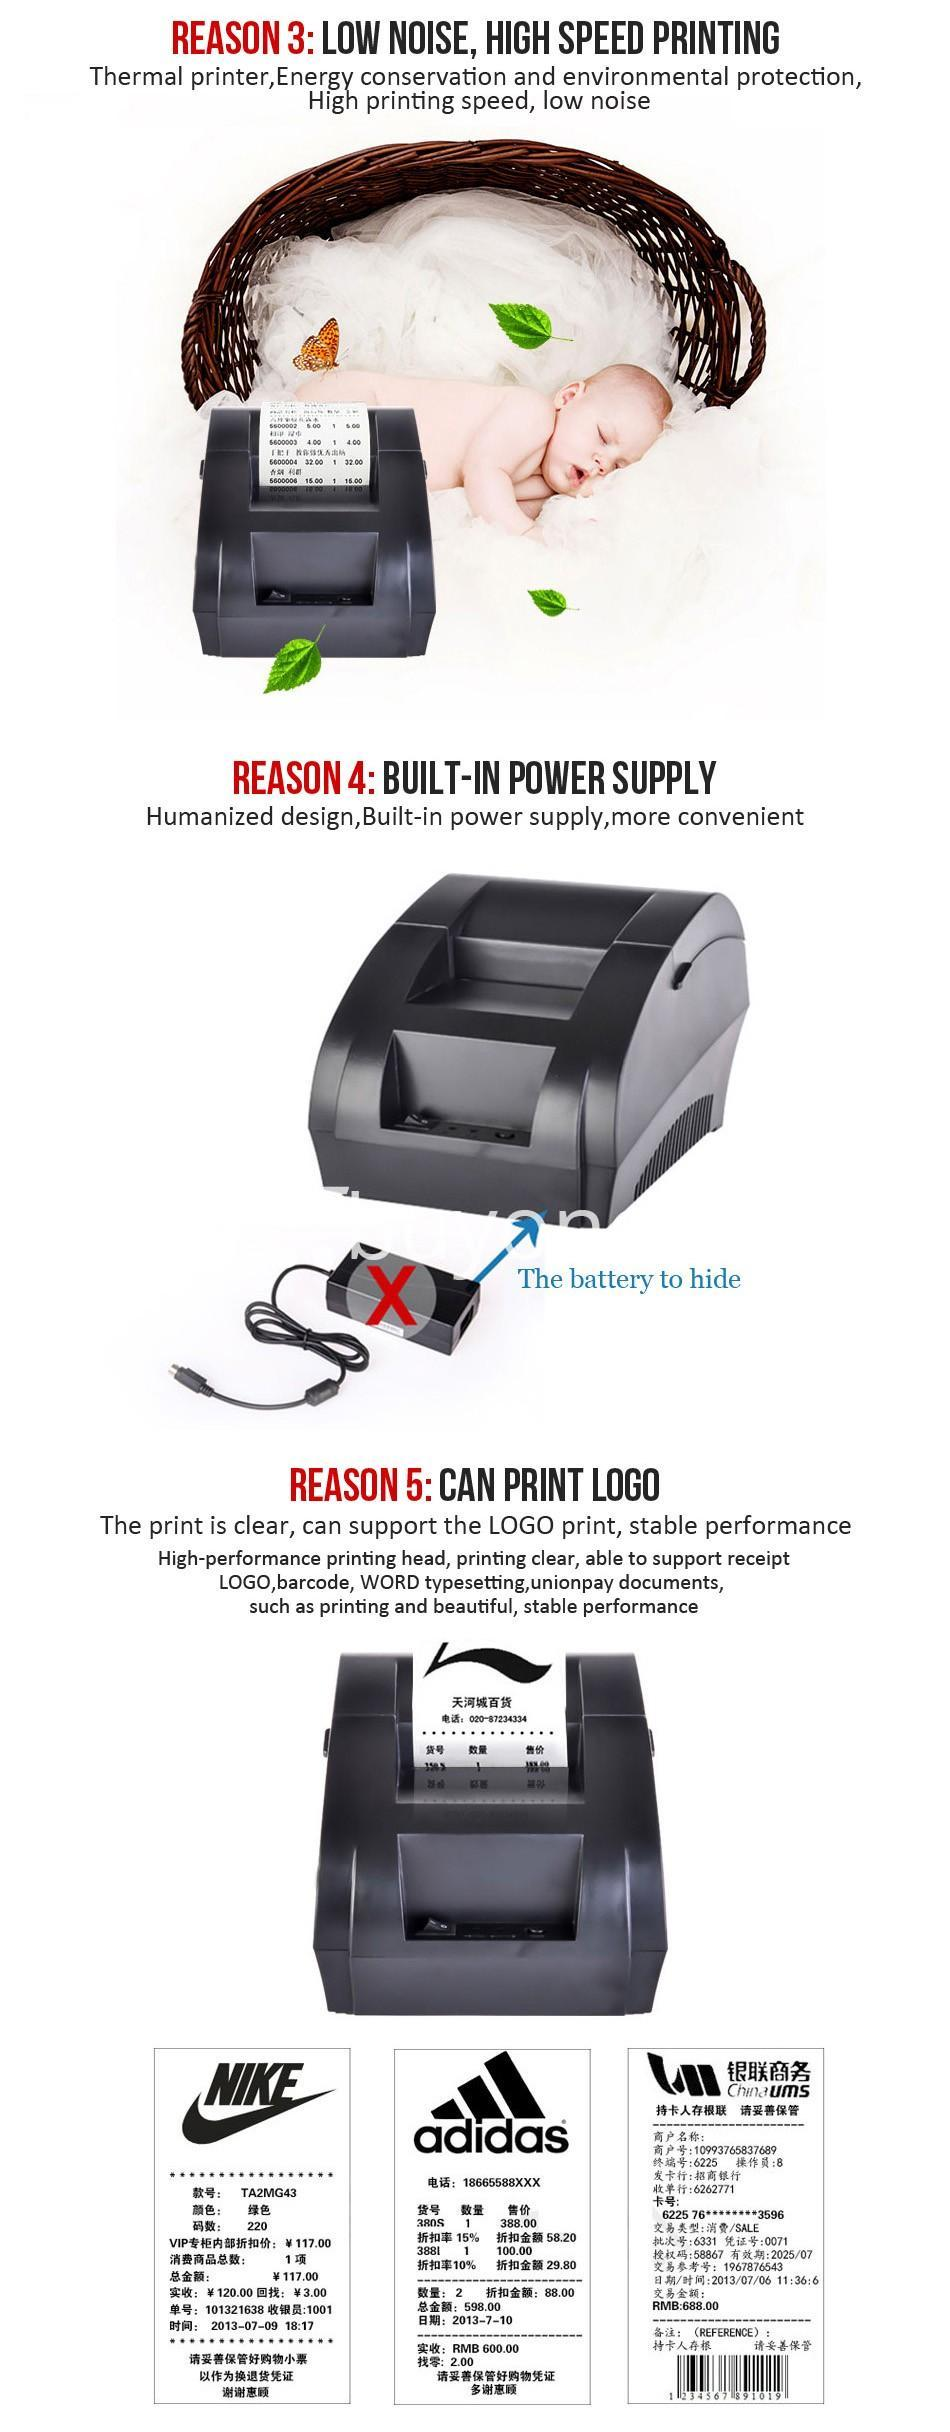 new 58mm thermal receipt printer pos with usb port computer store special best offer buy one lk sri lanka 44627 - New 58mm Thermal Receipt Printer POS with USB Port